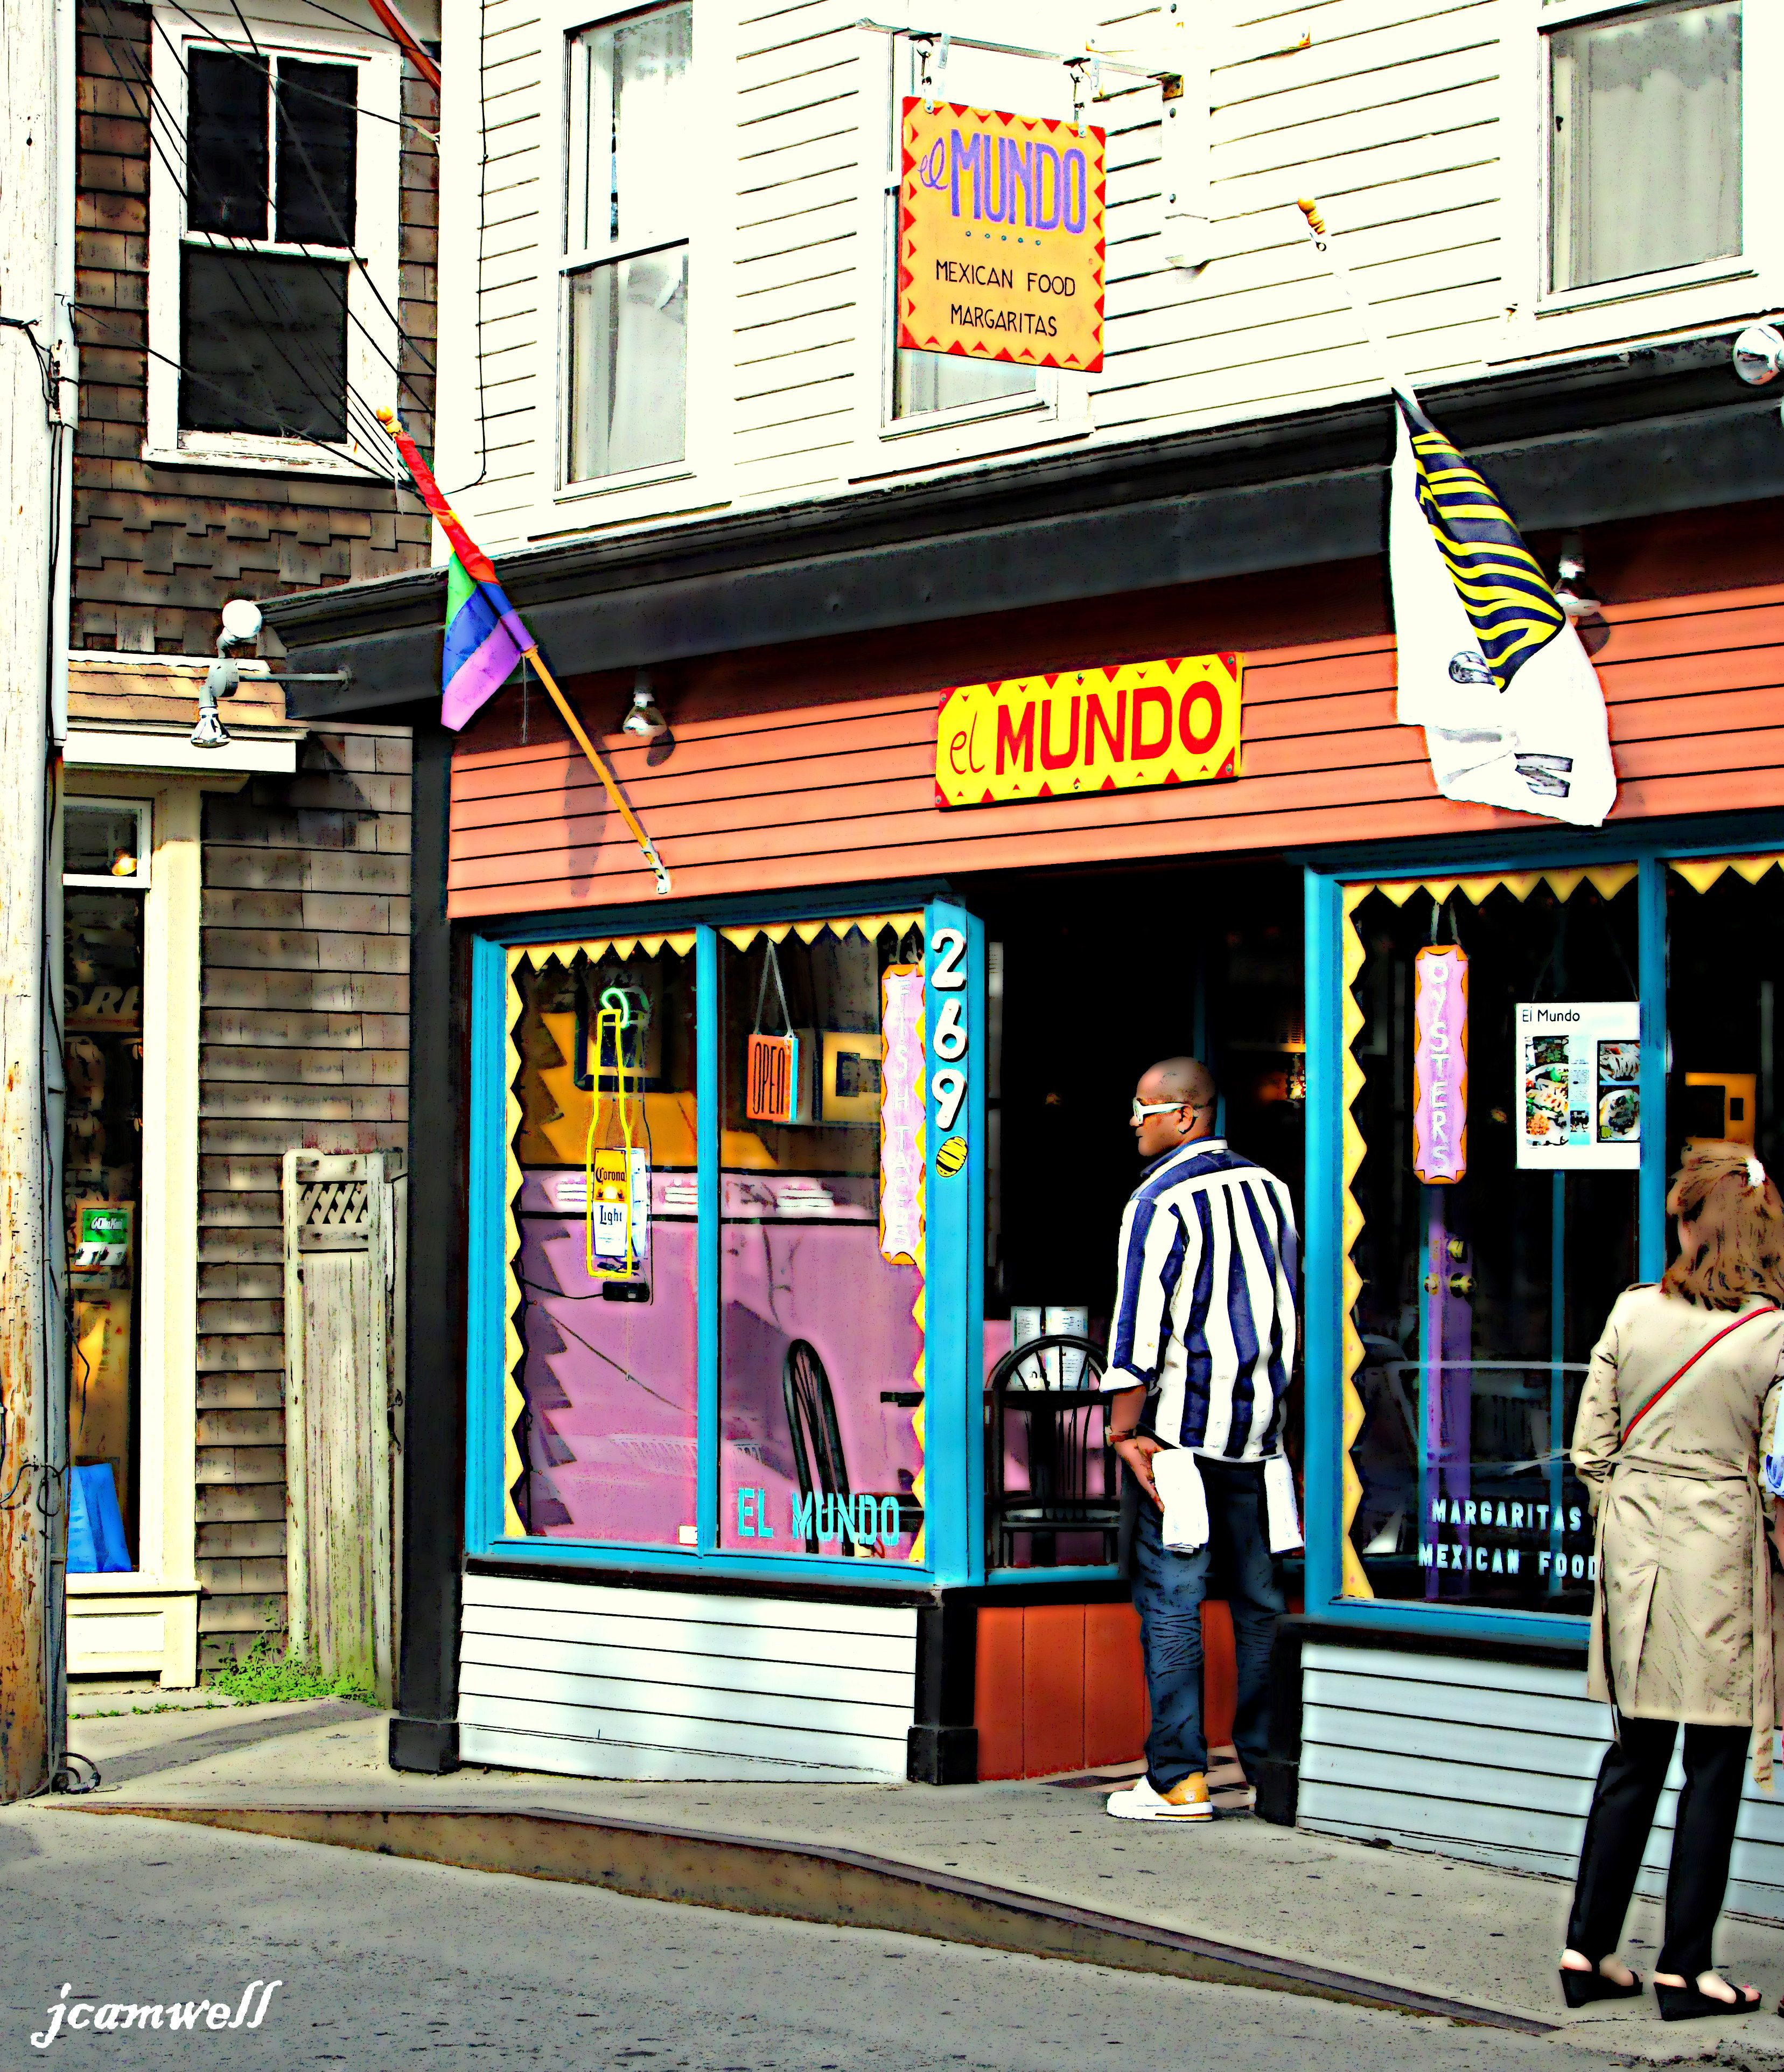 El Mundo In Provincetown-a Better View Than The Store On